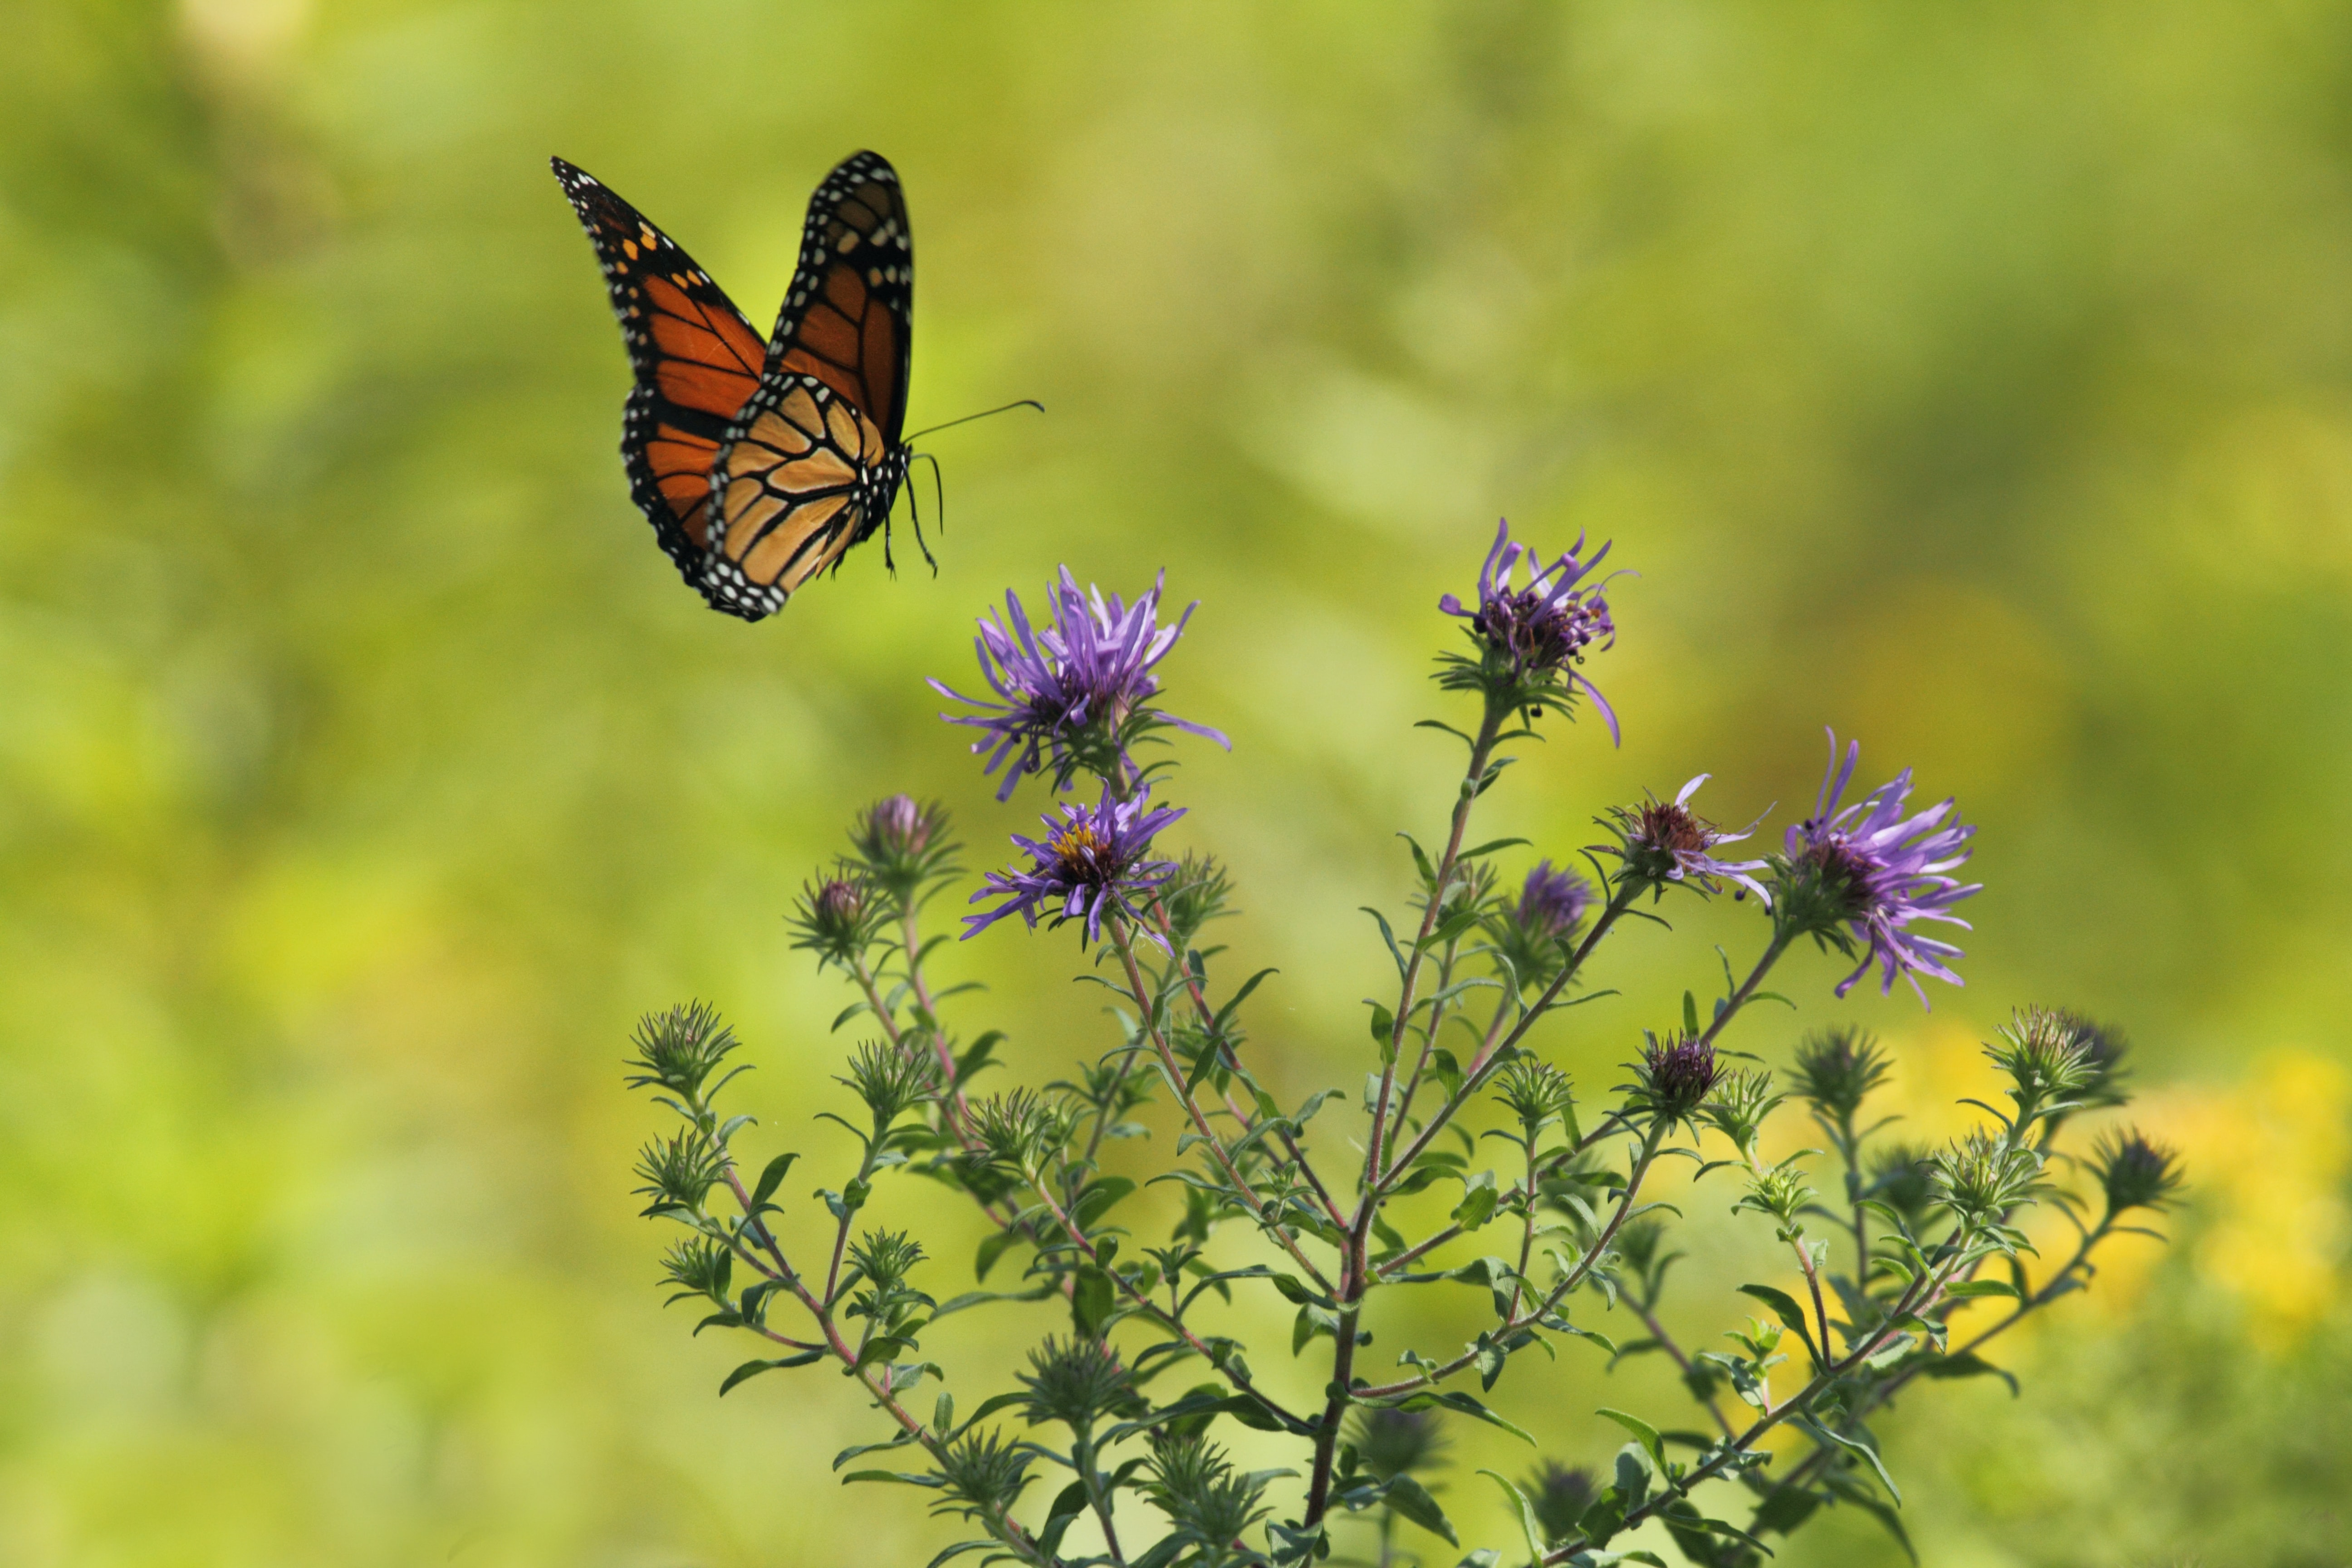 A monarch butterfly landing on thistle flowers